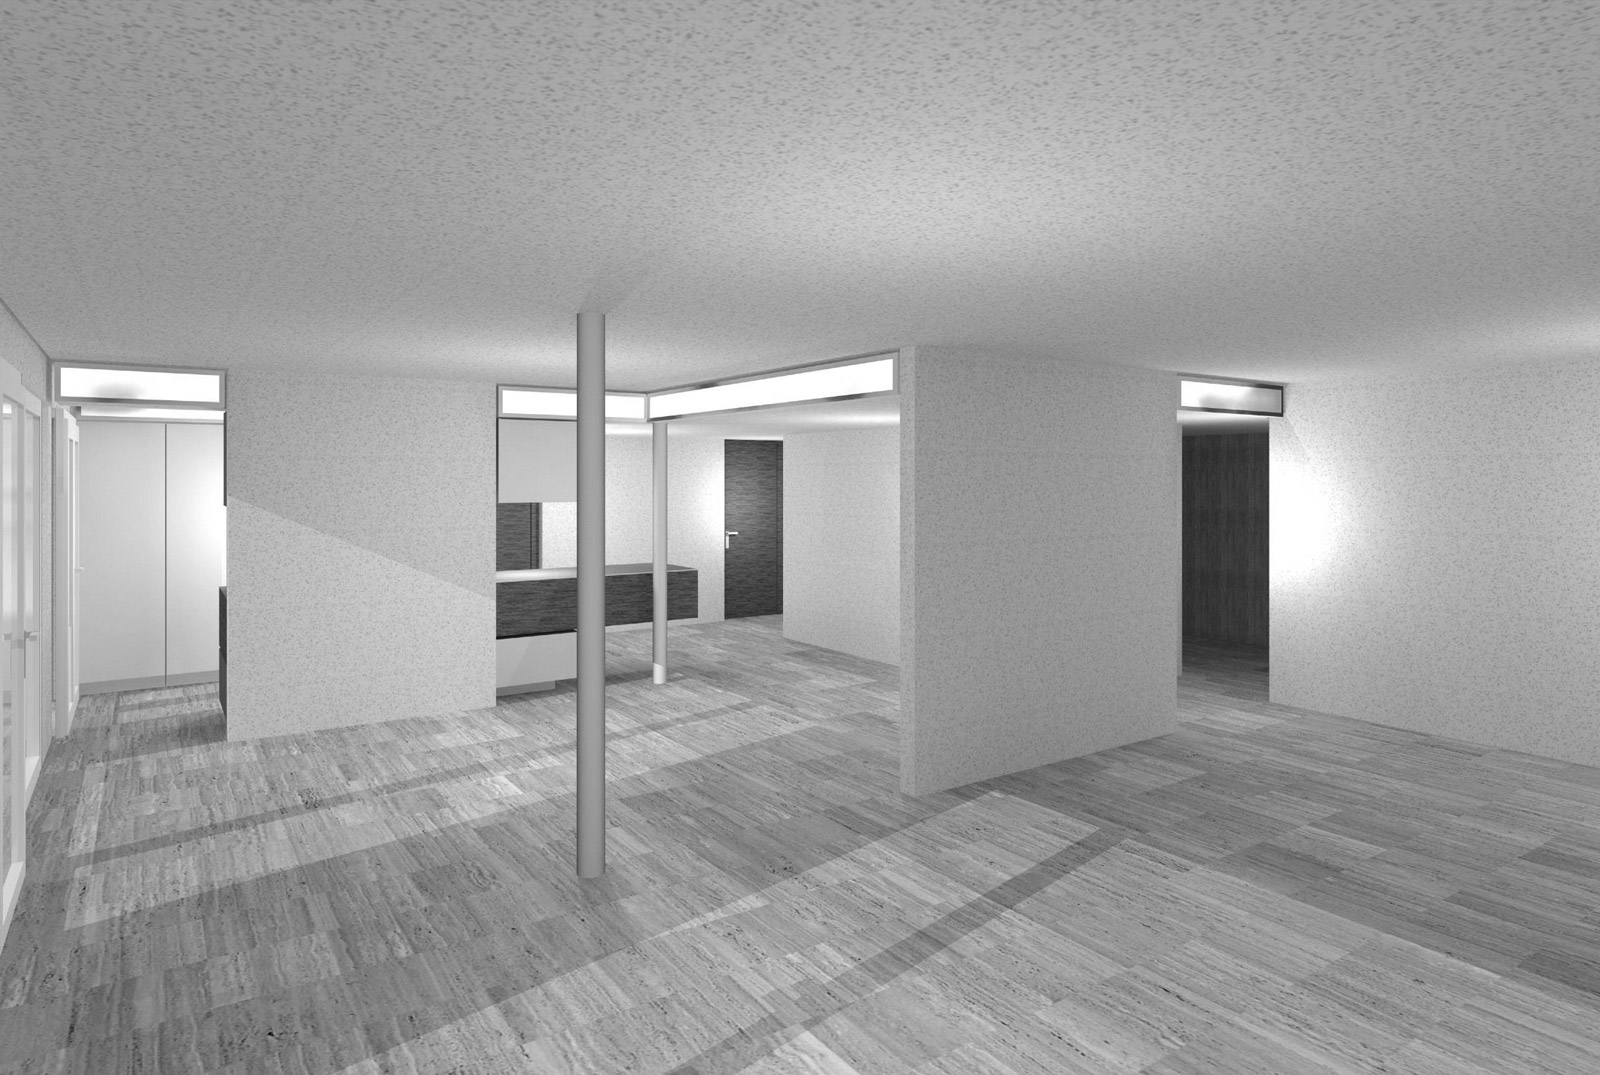 post-stucky, rendering of living space